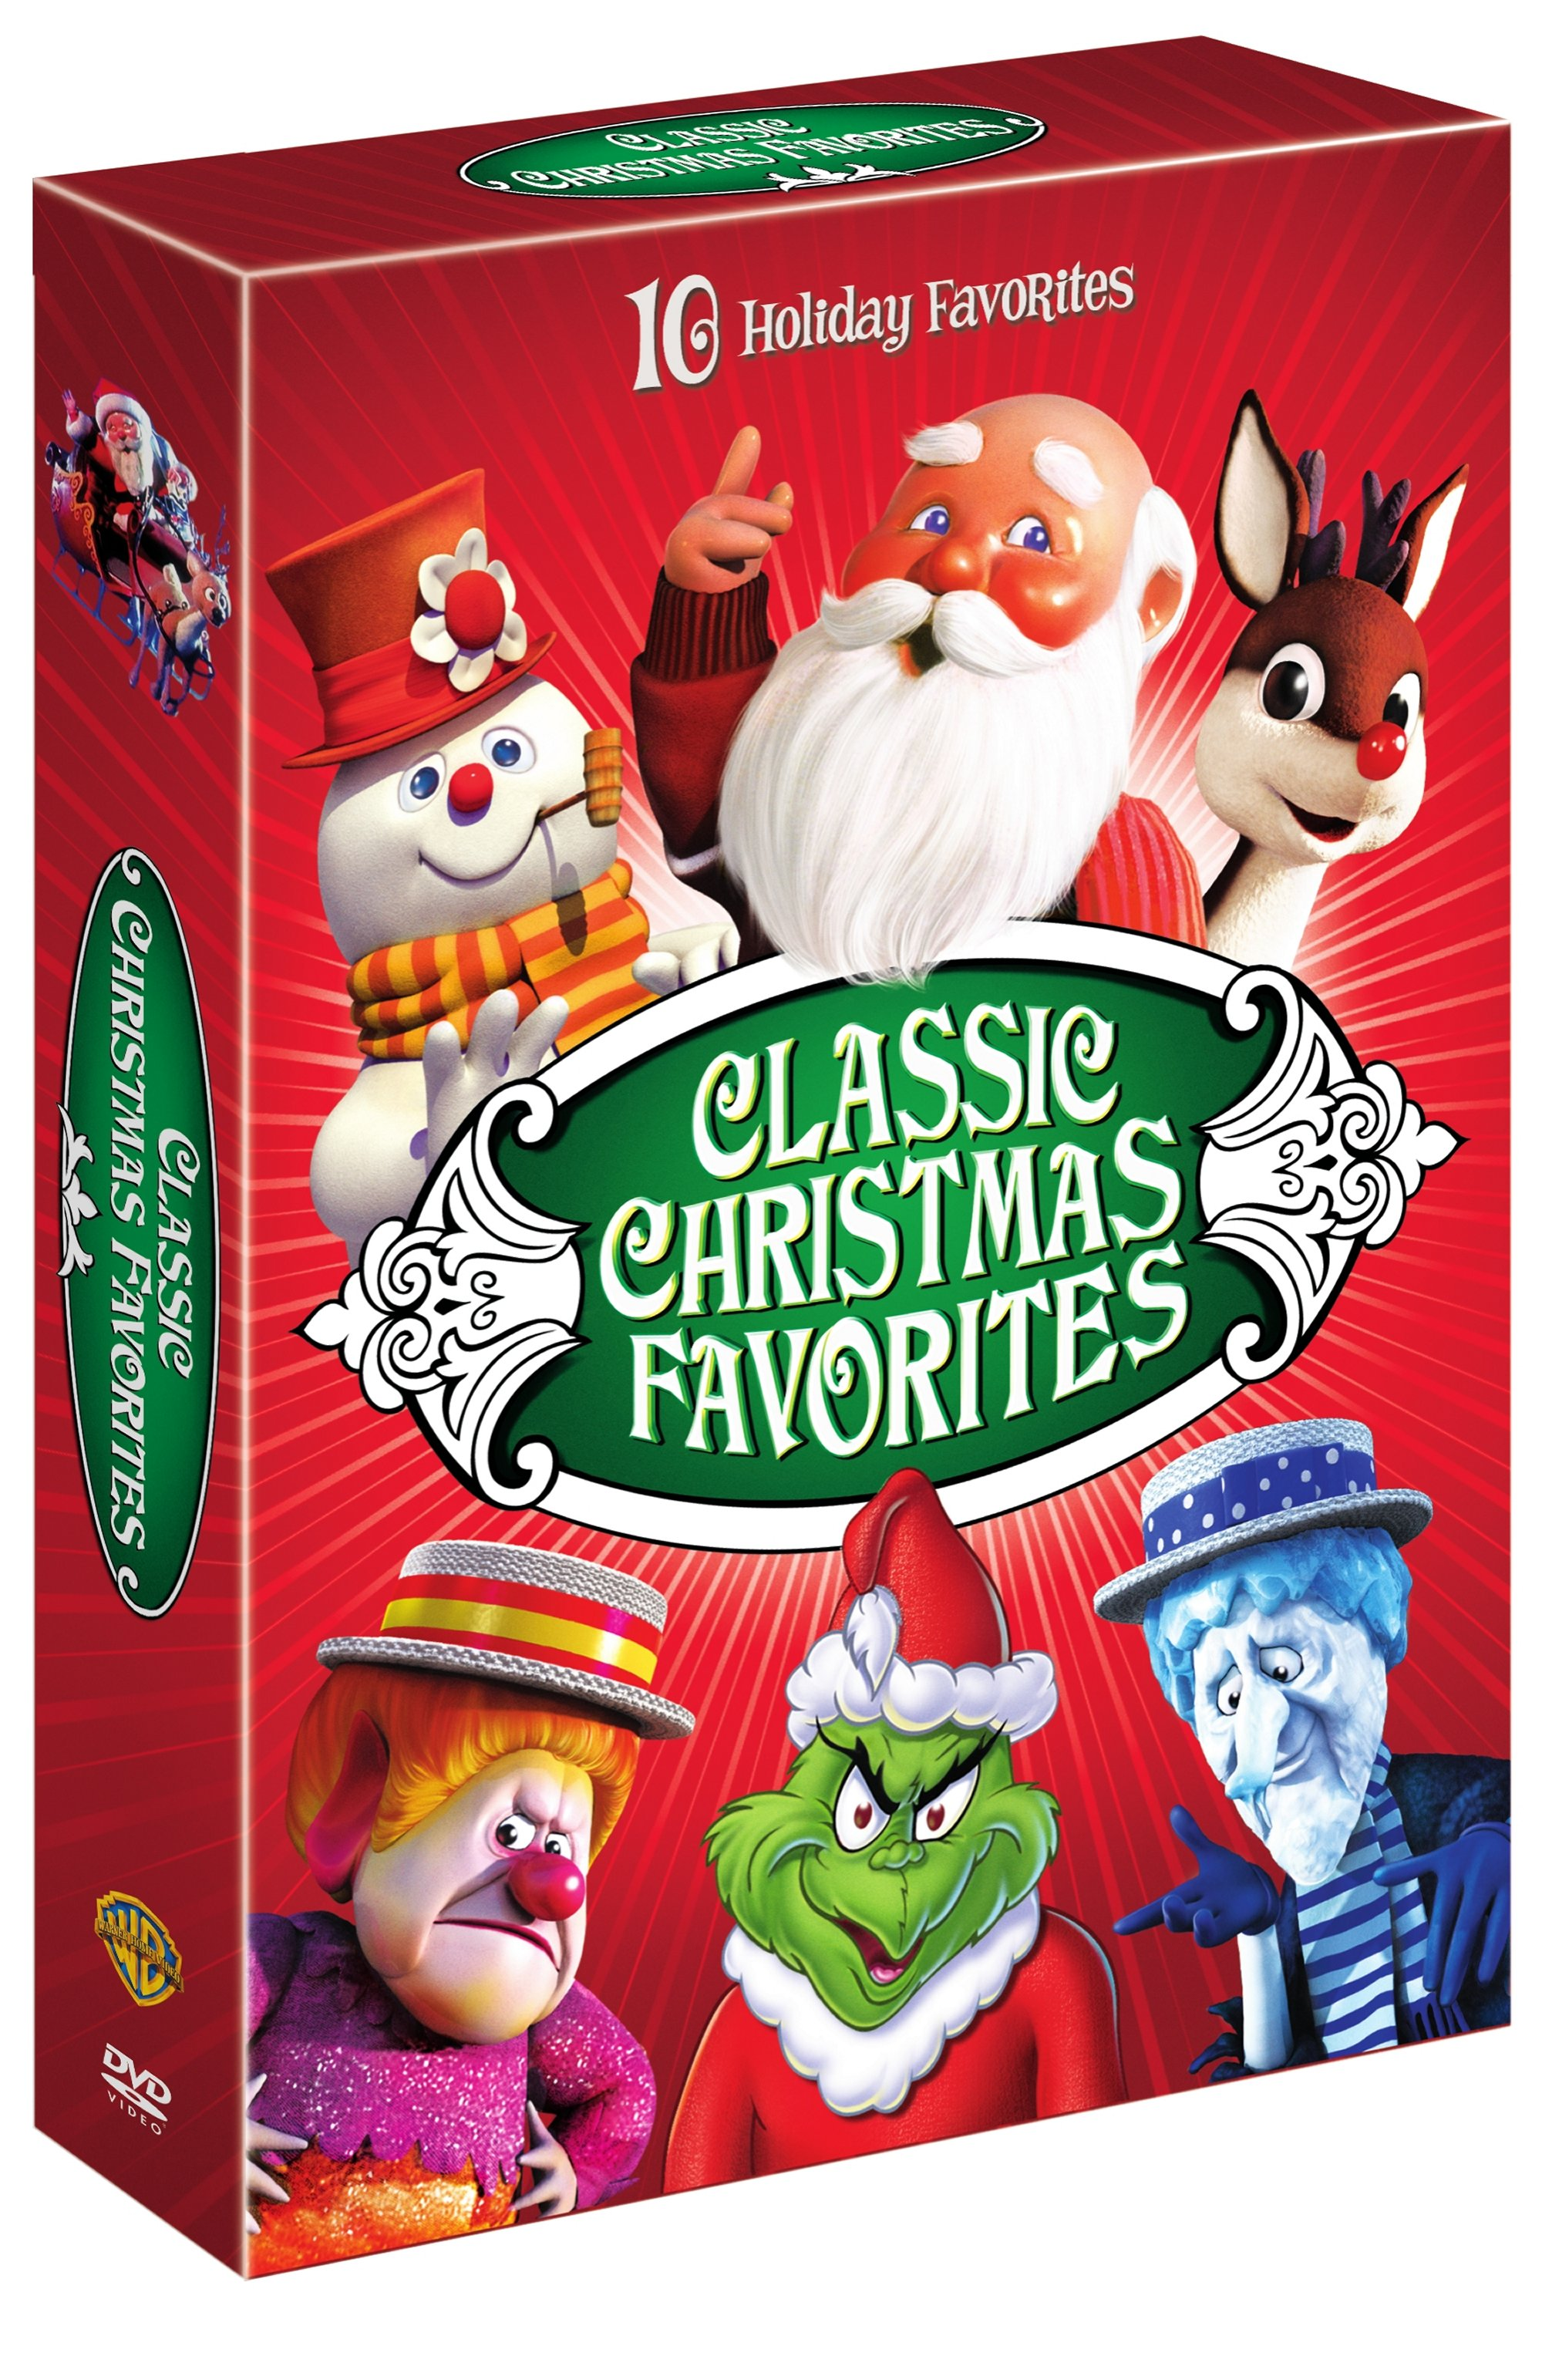 Rudolph And Frostys Christmas In July Dvd.Classic Christmas Favorites Dvd Walmart Com